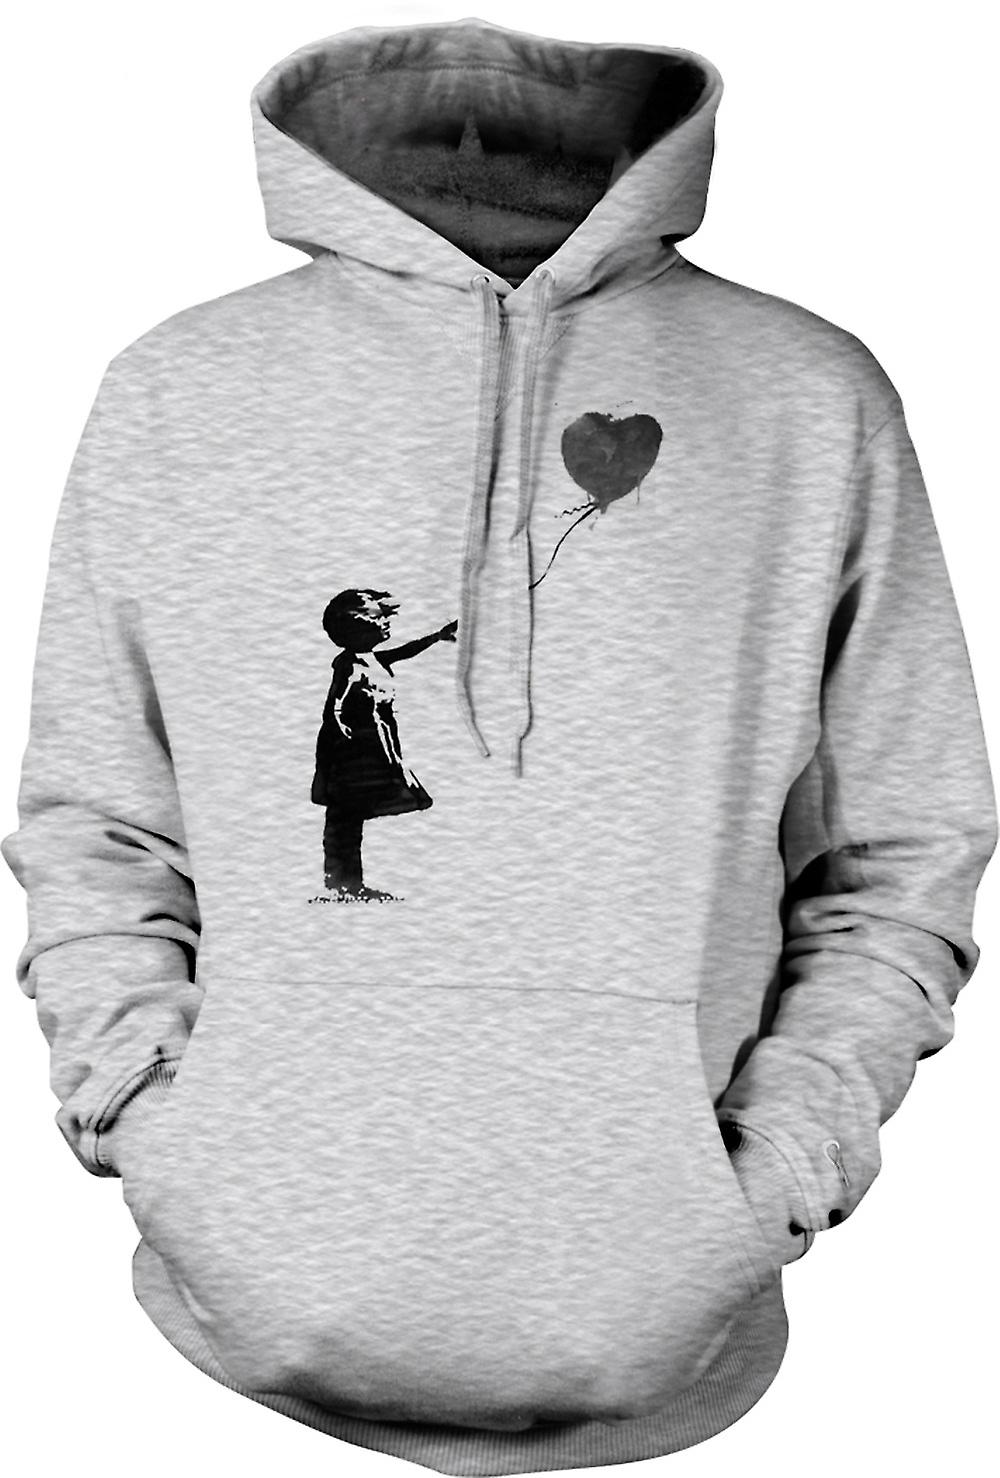 Mens Hoodie - Banksy Graffiti Art - Balloon